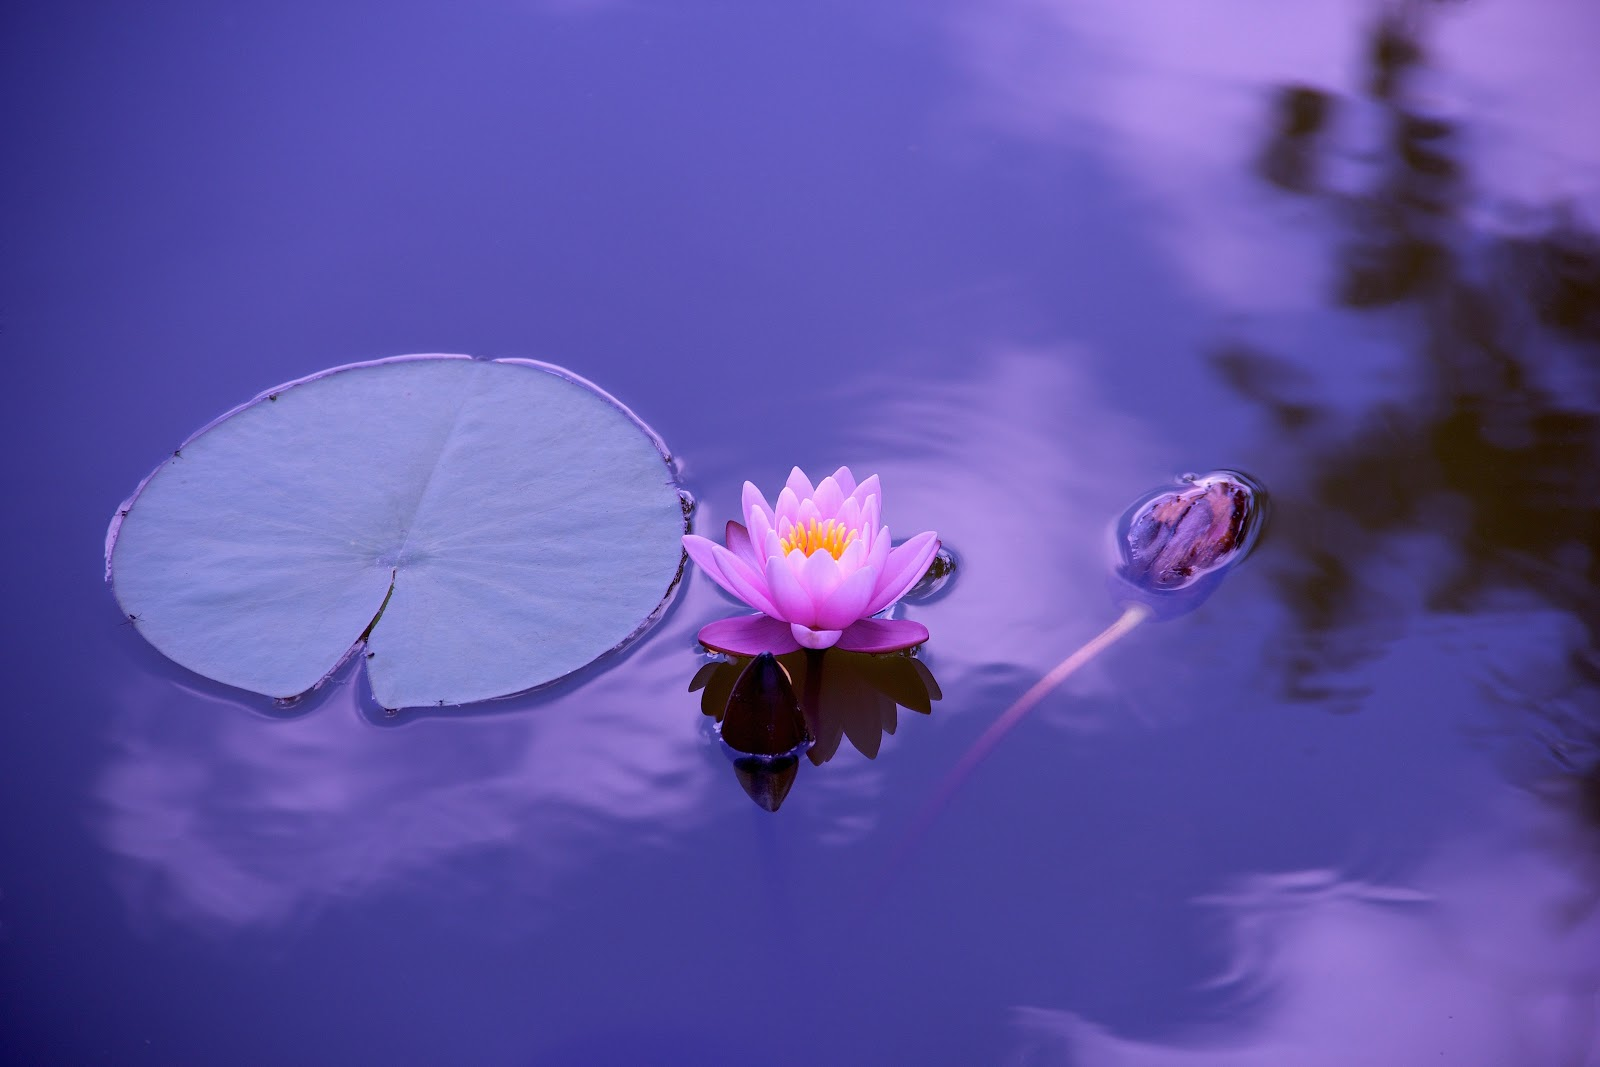 purple-lotus, flower wallpaper images